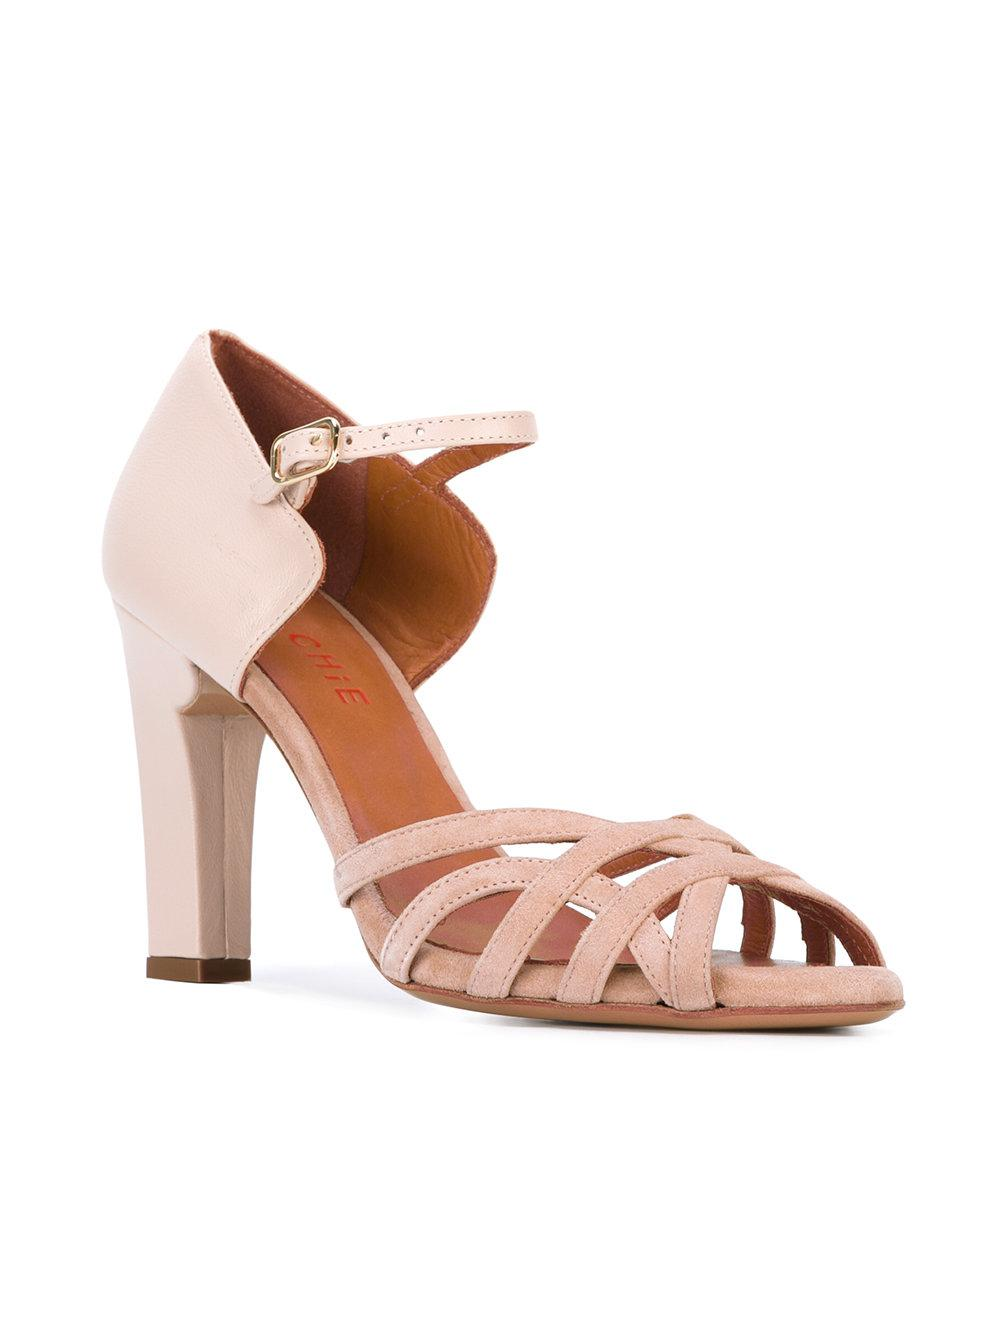 Samaia sandals - Unavailable Chie Mihara Big Discount Online Clearance Shopping Online Purchase Online Cheap Real Finishline Cheap Price For Sale khUzoLdxG